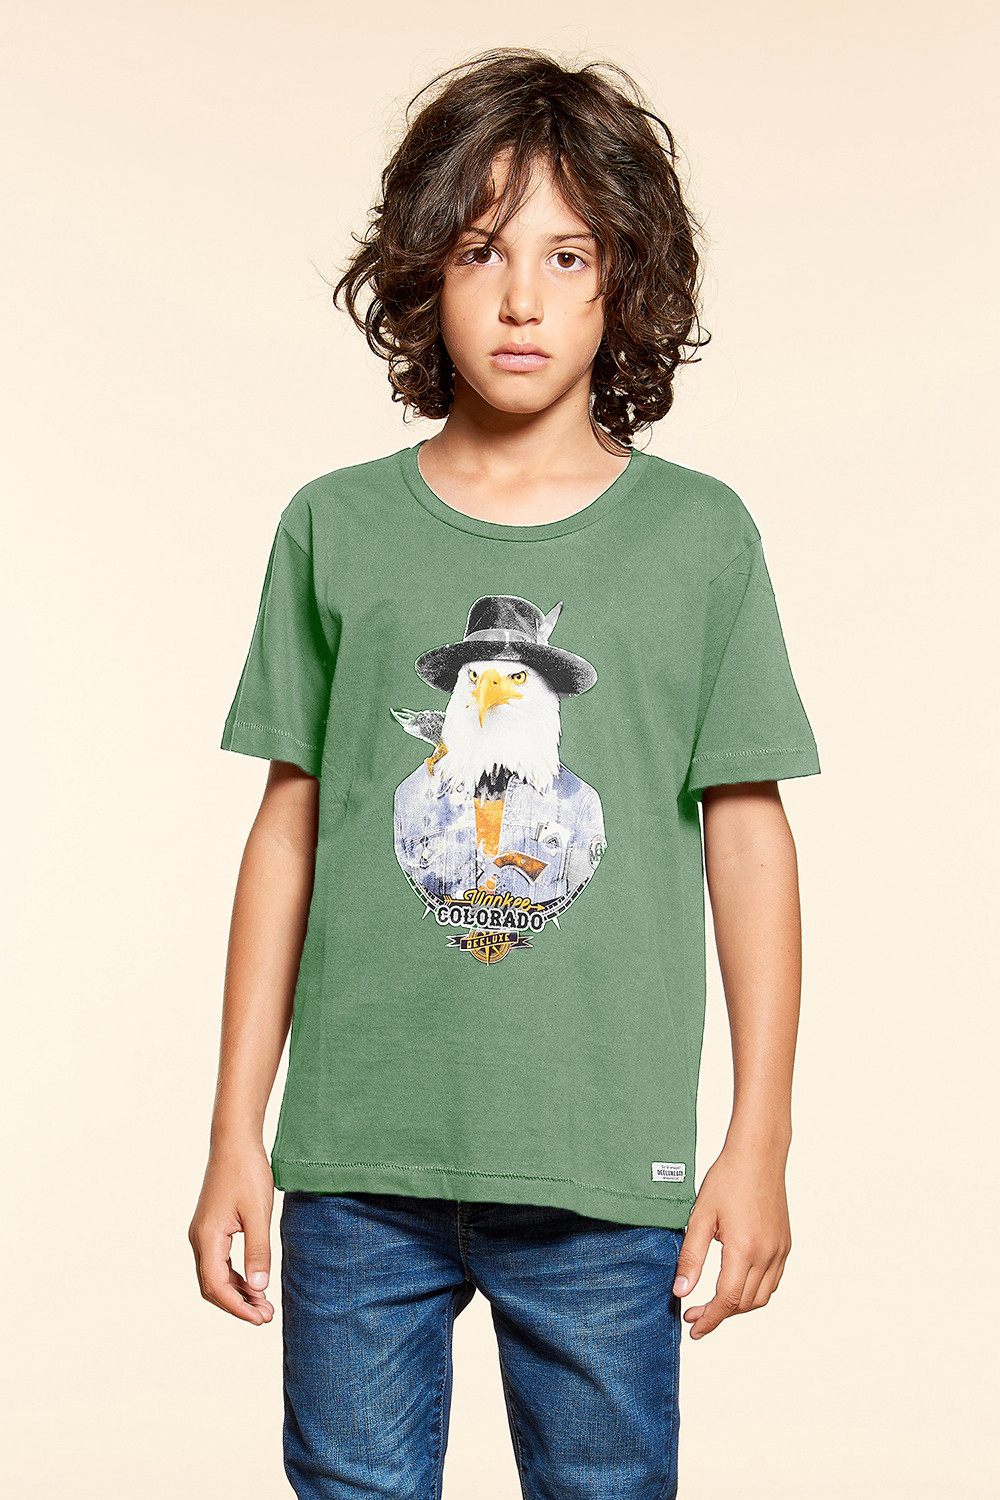 T-shirt EAGLE Outlet Deeluxe